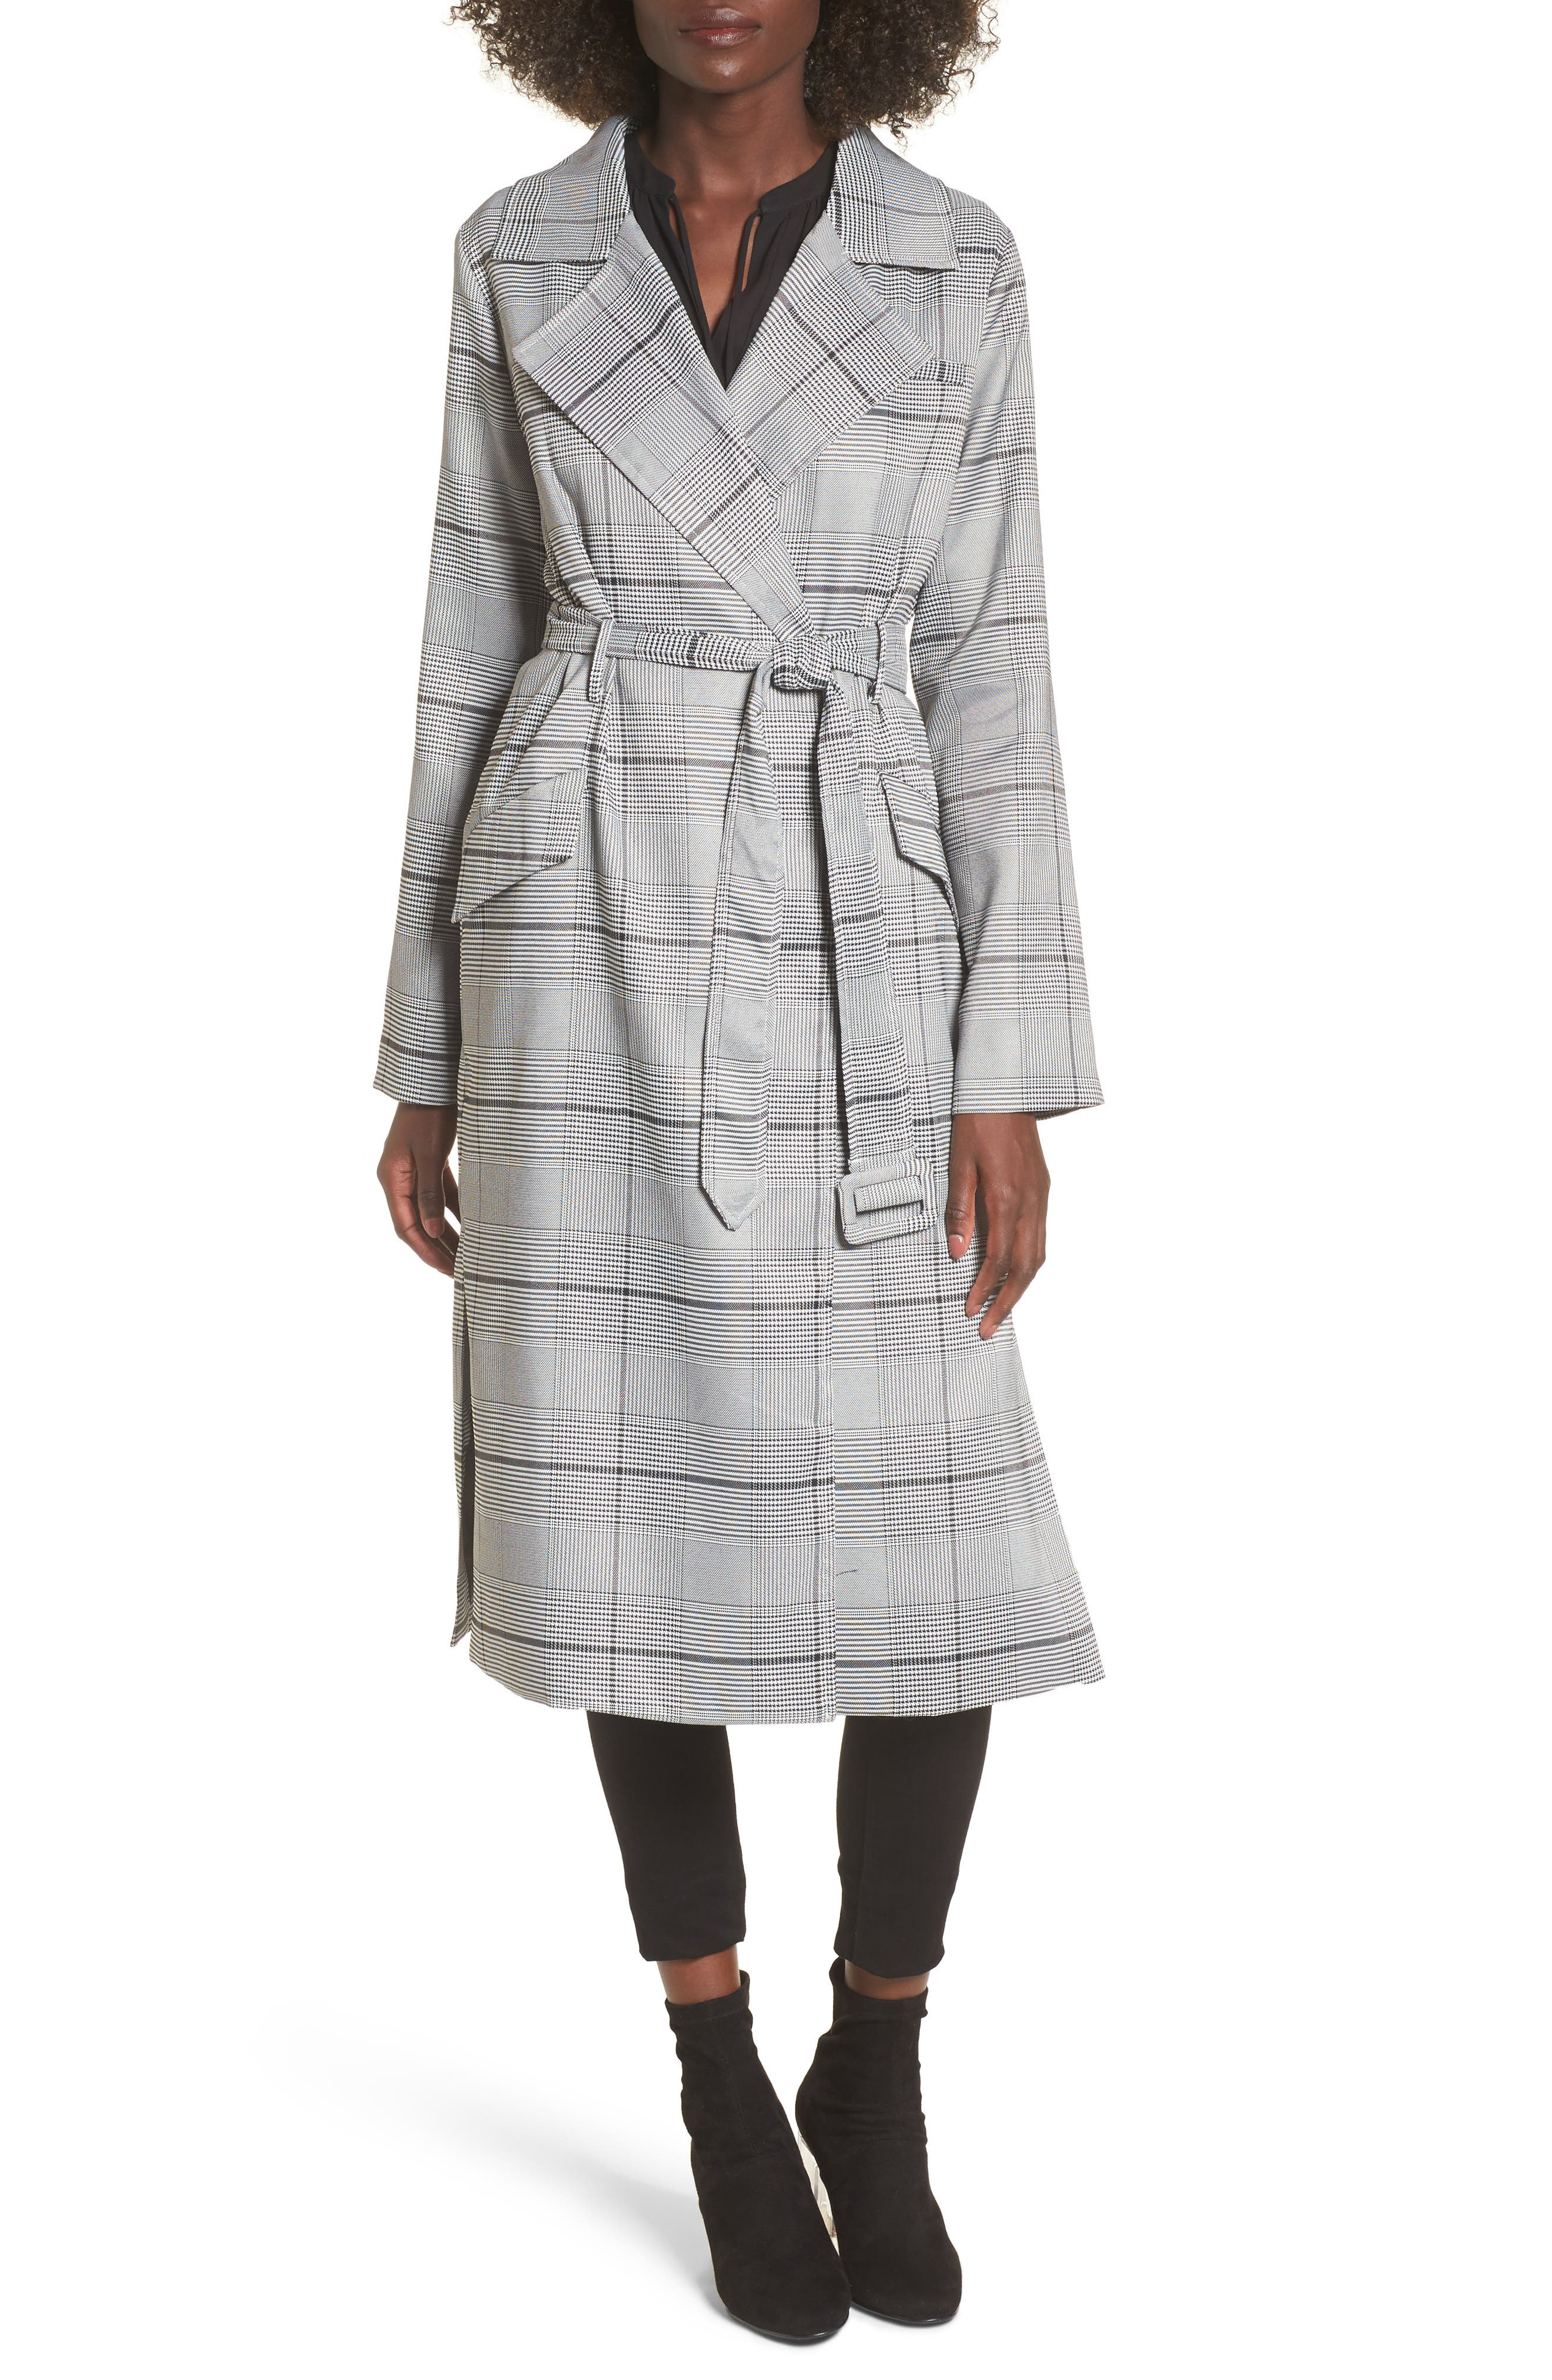 J.O.A. Plaid Menswear Coat